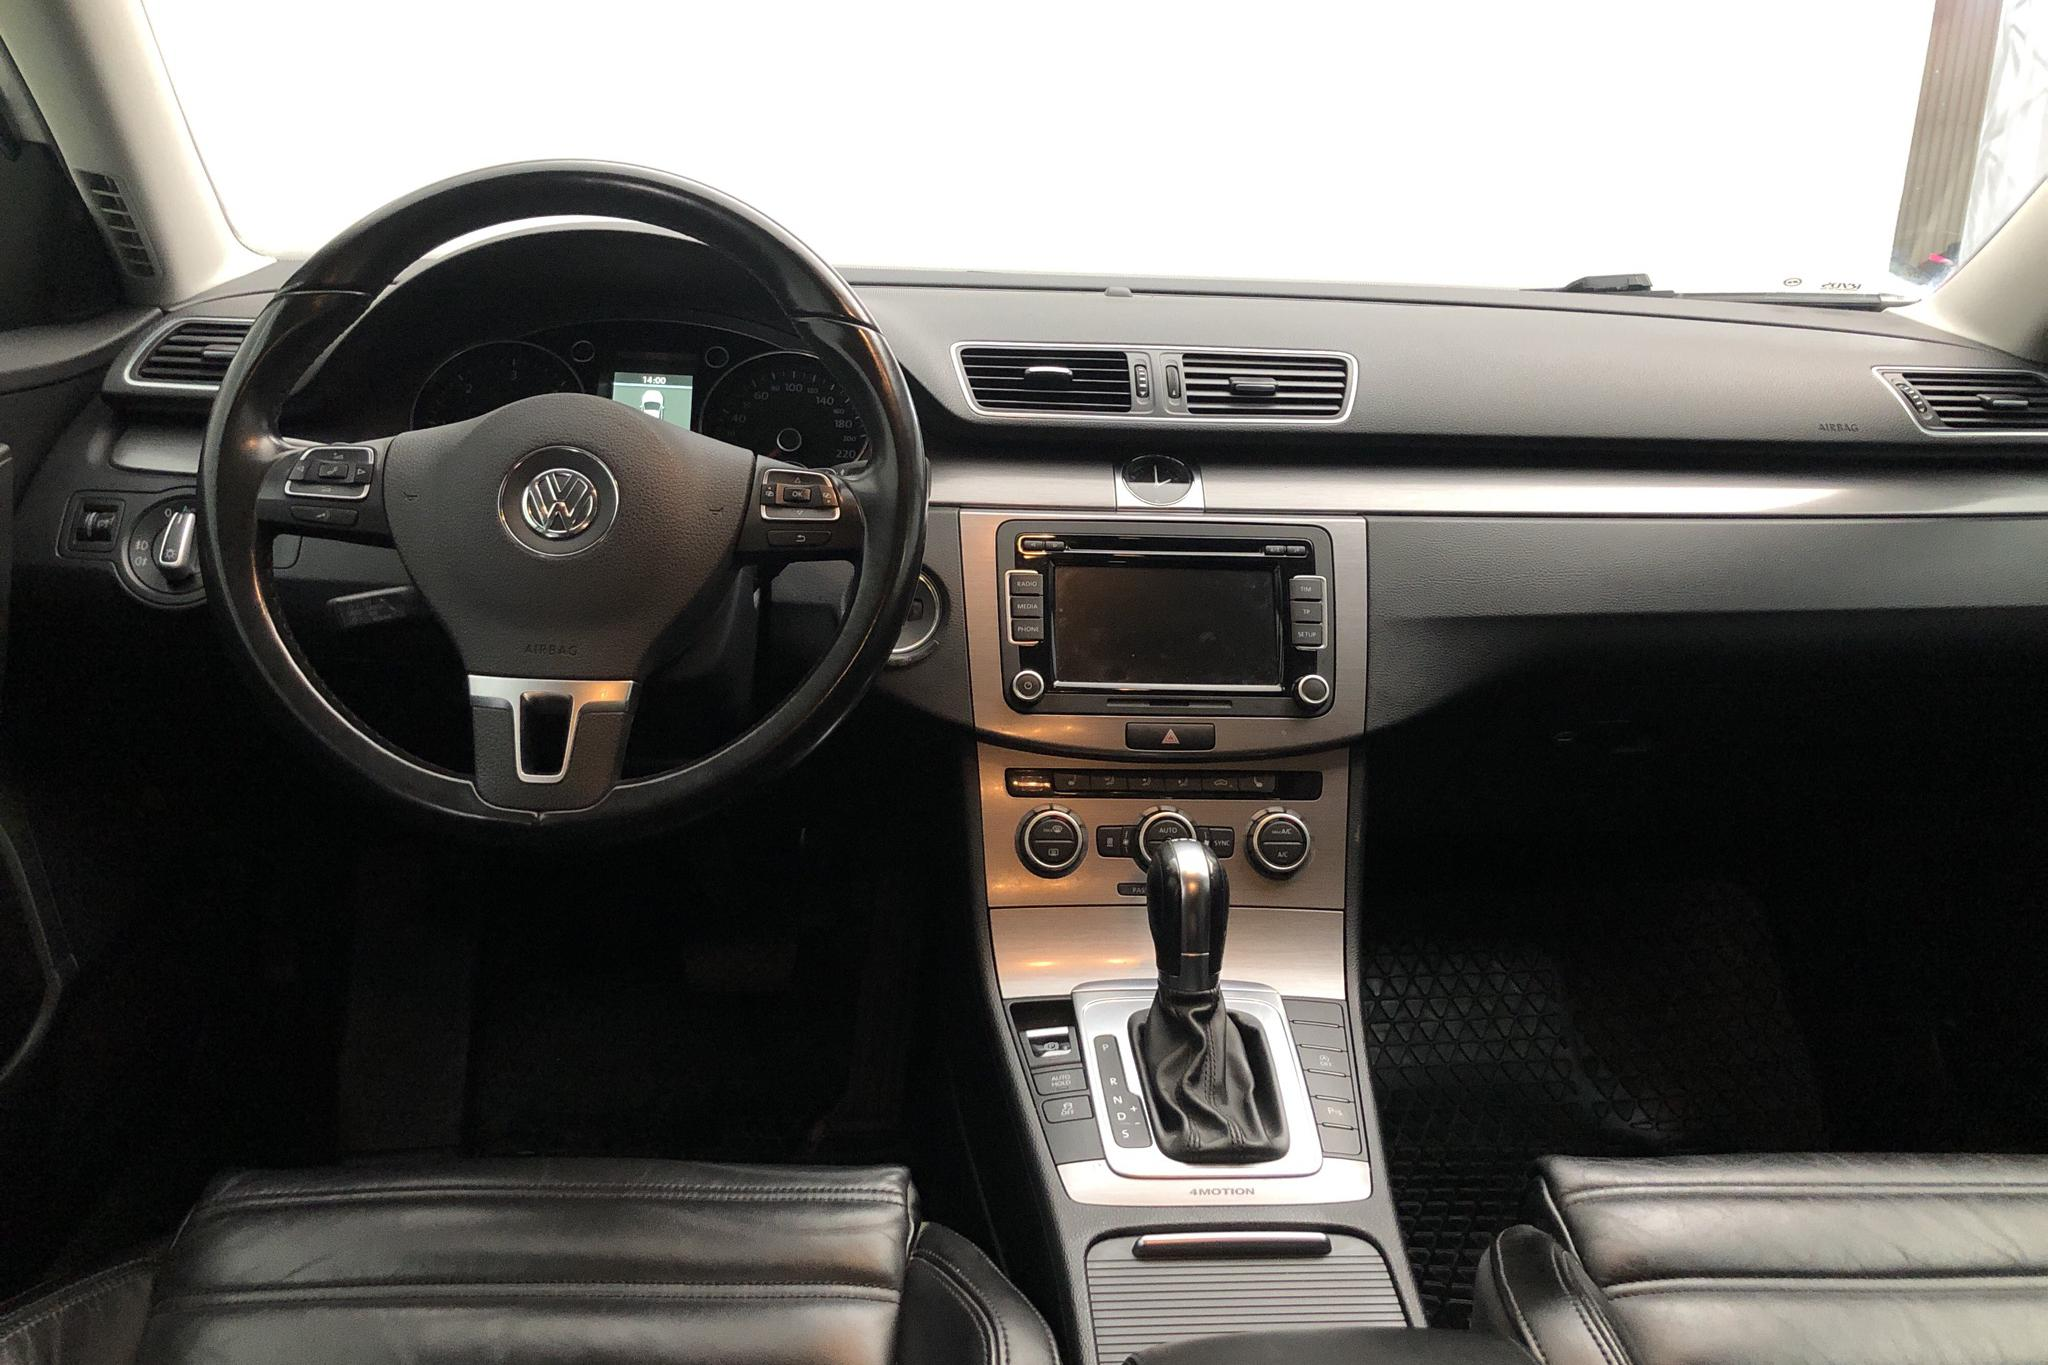 VW Passat 2.0 TDI BlueMotion Technology Variant 4Motion (170hk) - 209 750 km - Automatic - white - 2013